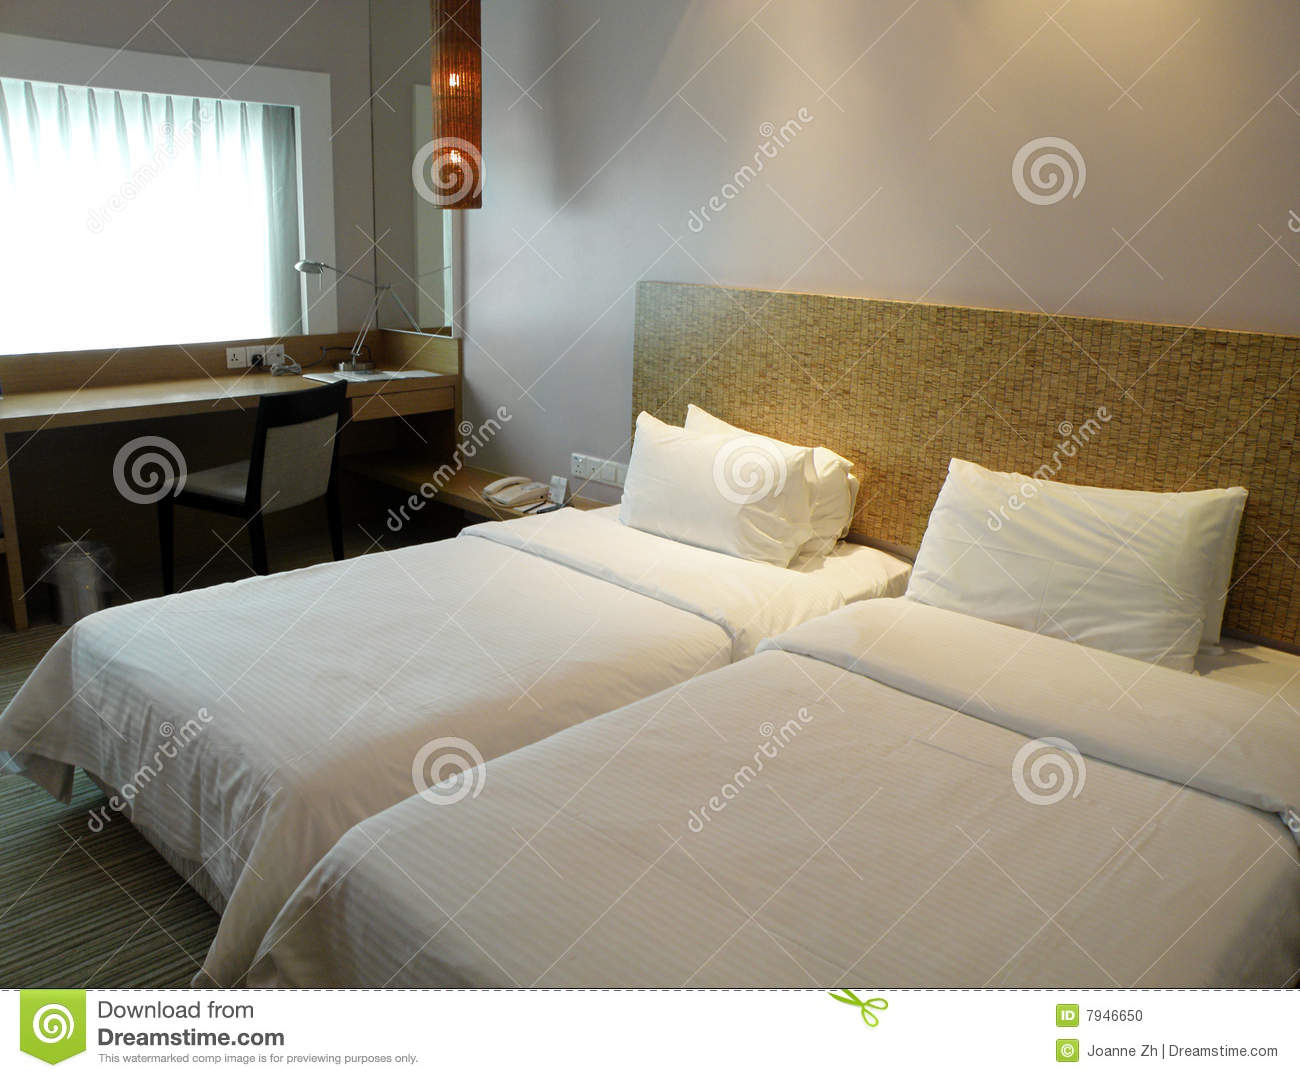 Simple hotel room interior stock photo image 7946650 for Hotel room interior